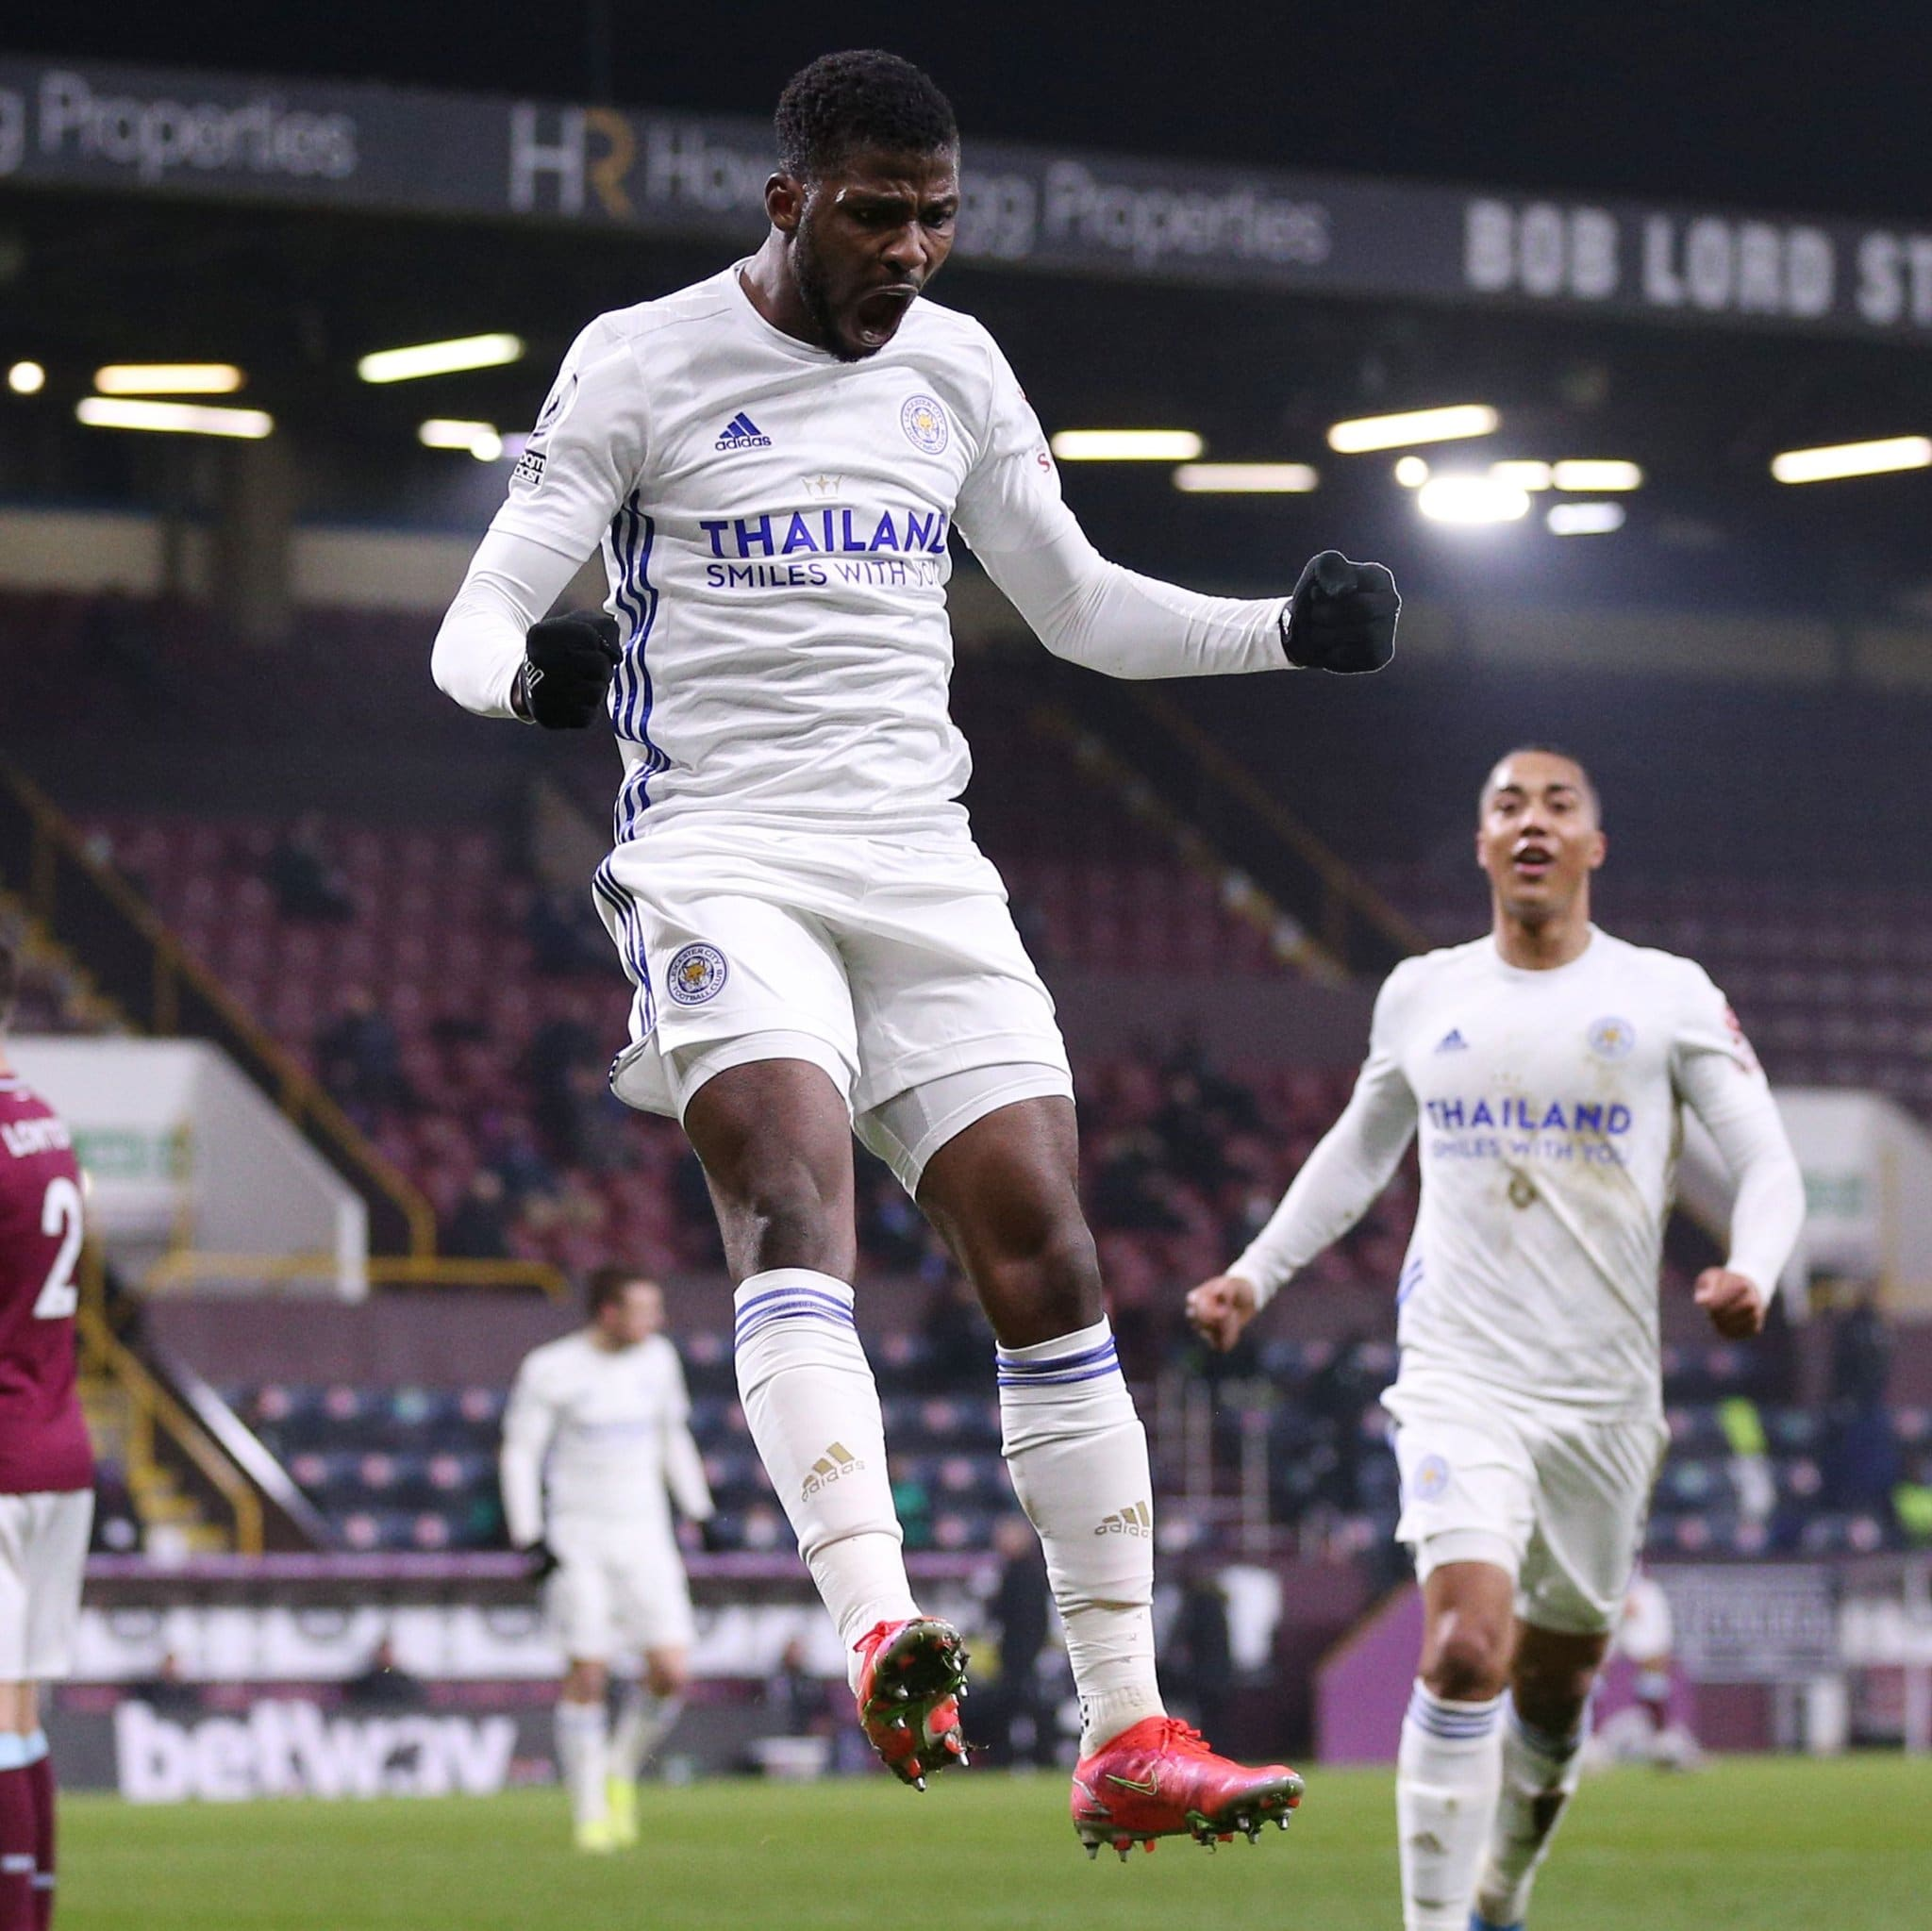 Premier League: Ndidi Provides Assist For Iheanacho In Leicester's Draw At Burnley